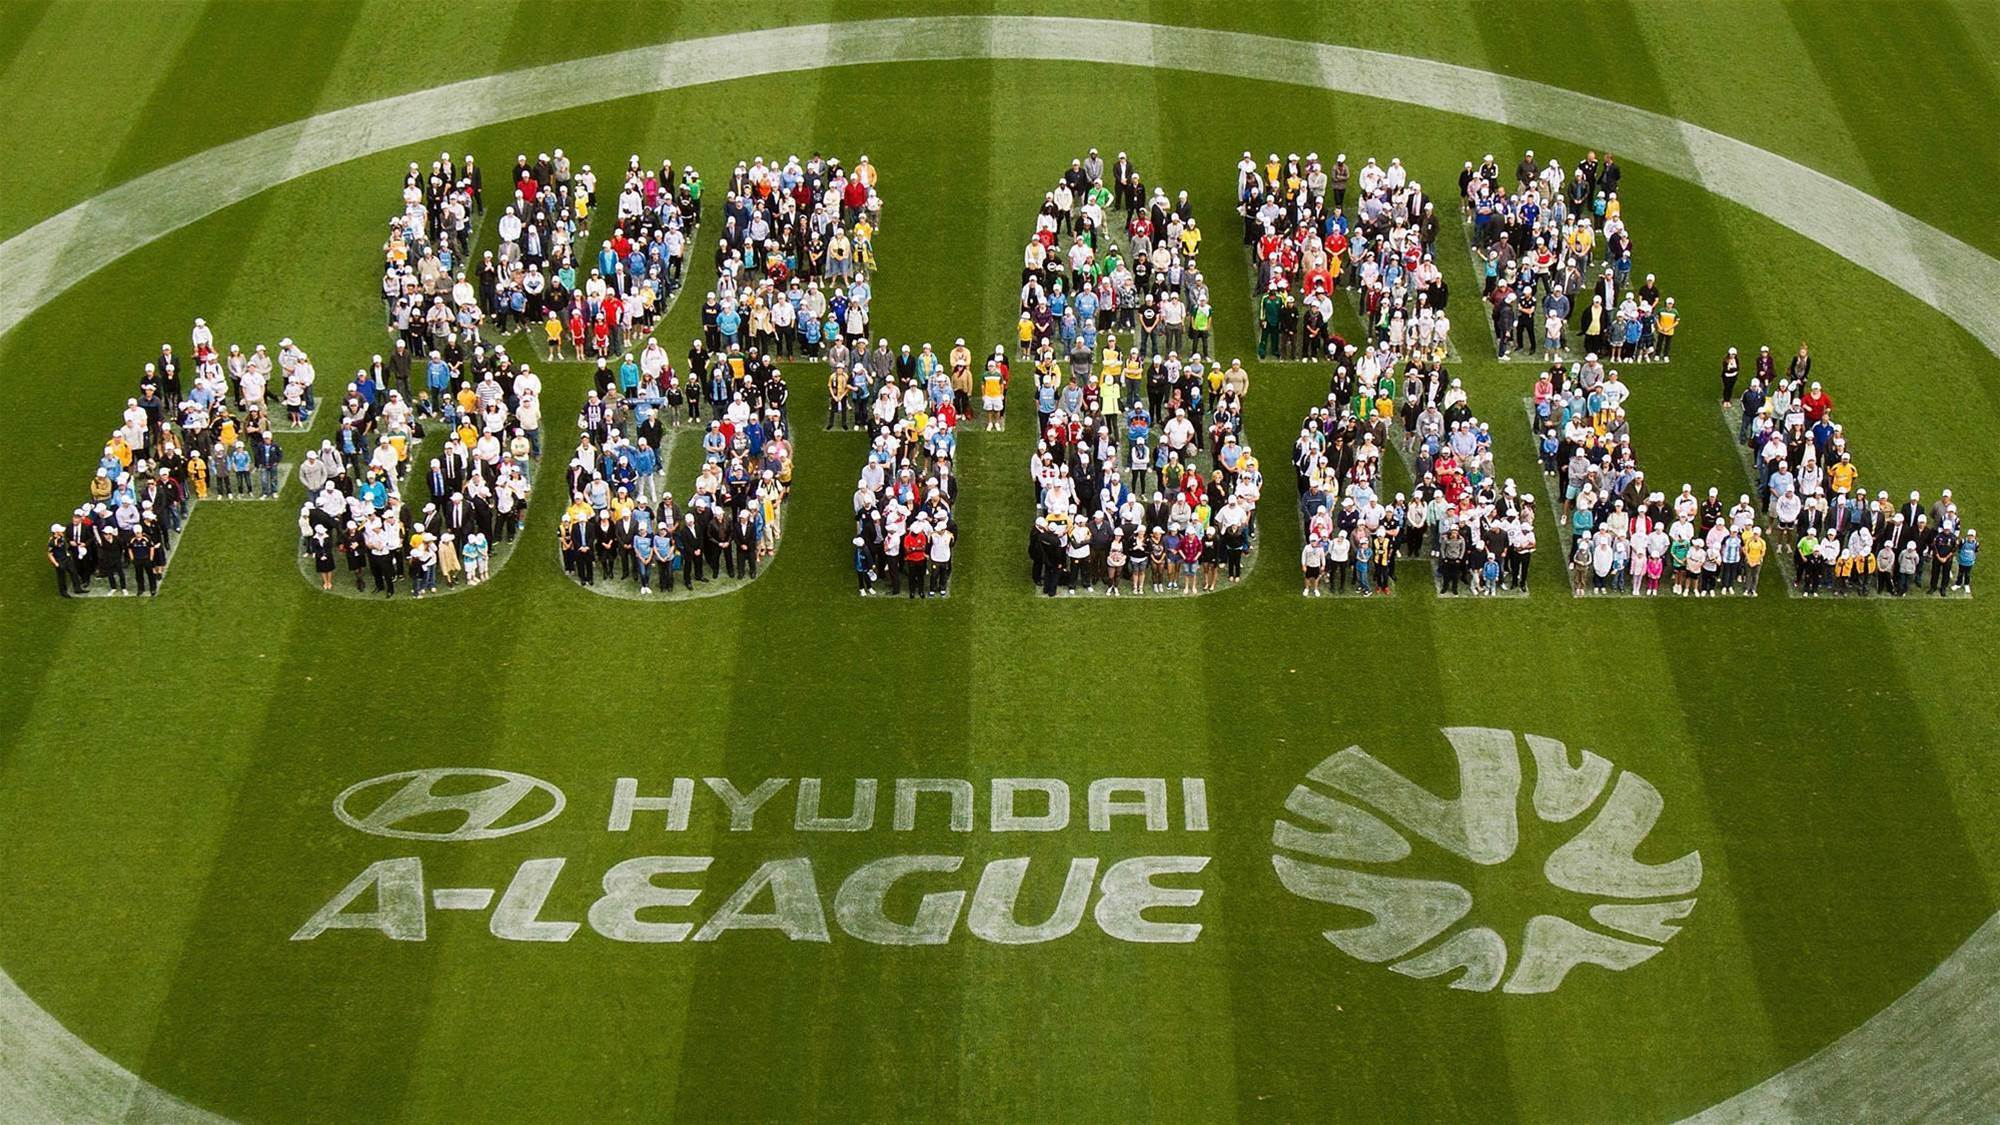 And the two new A-League teams are?